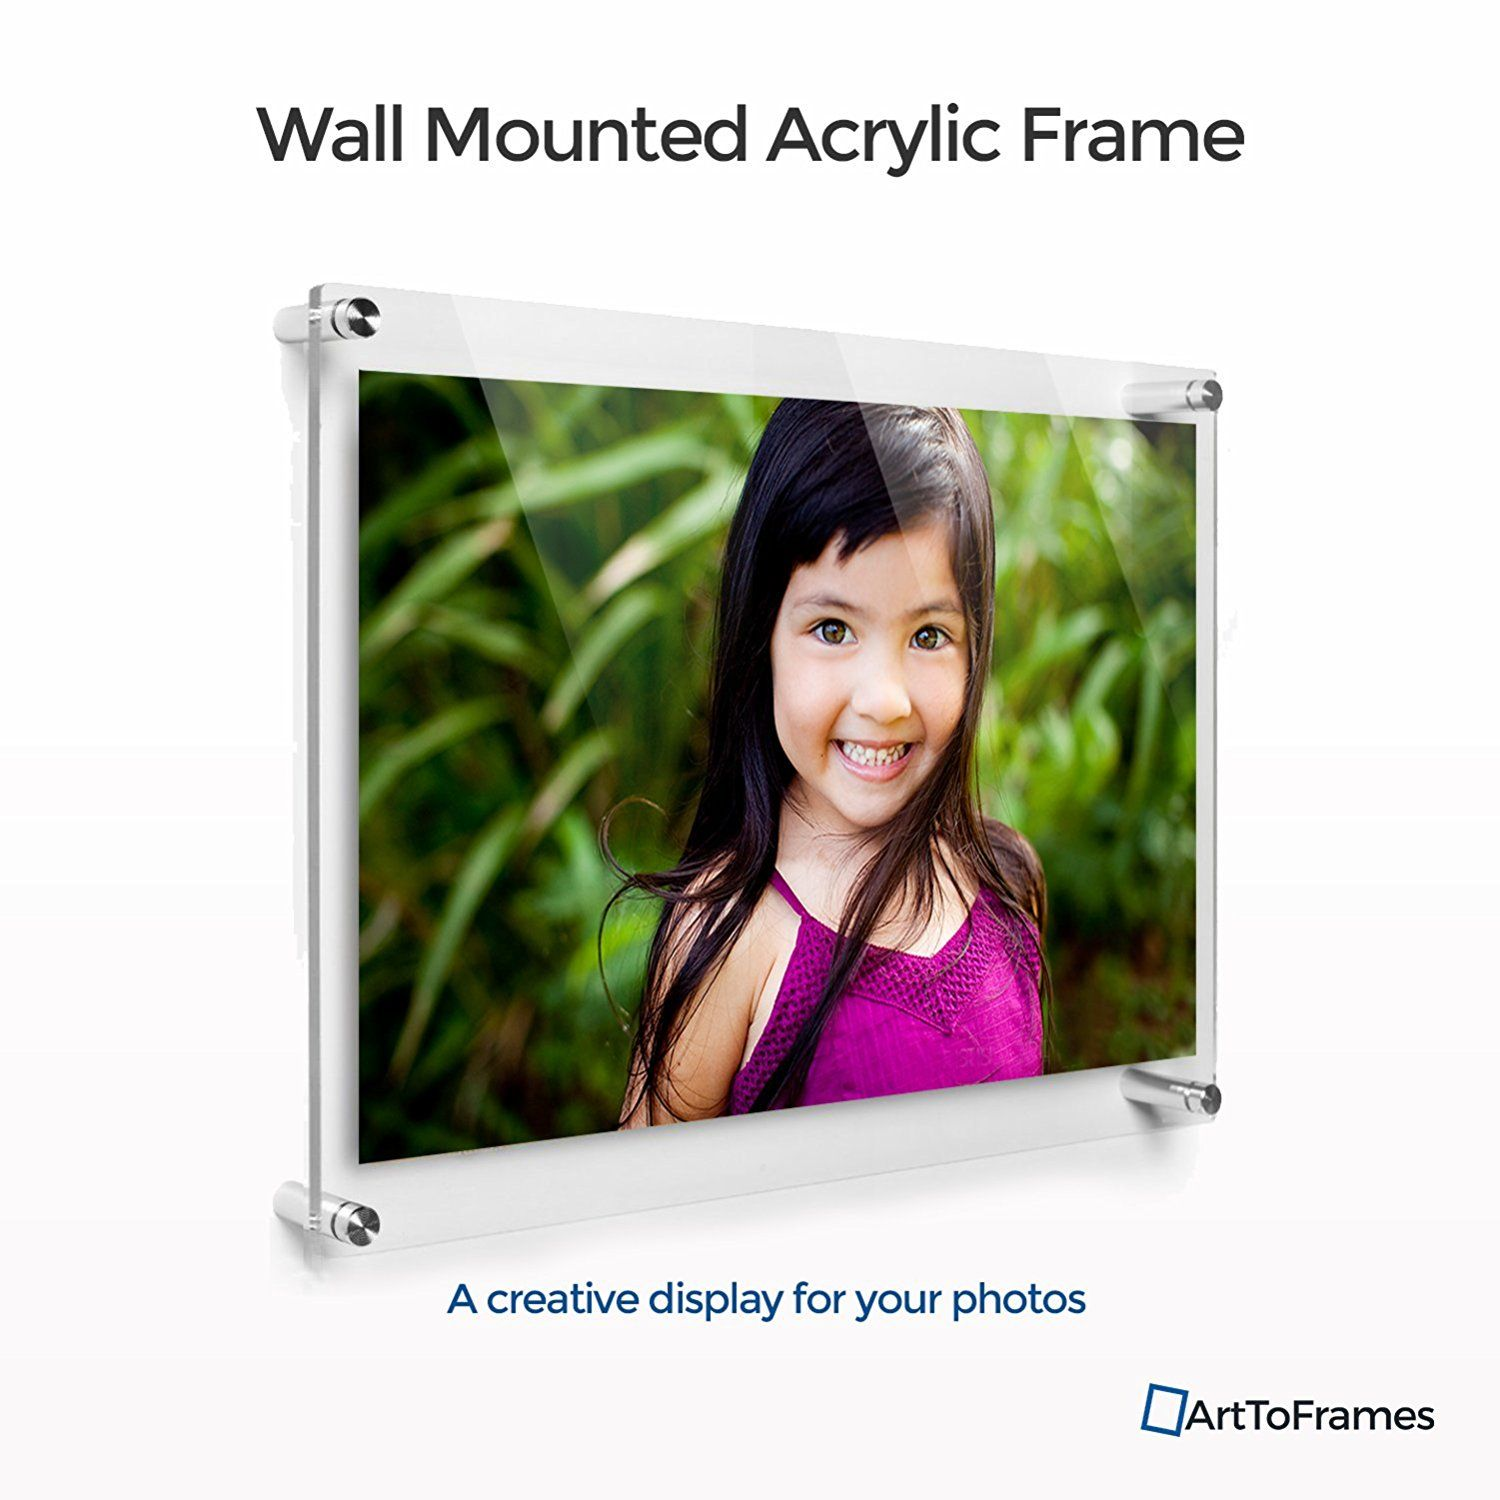 ArtToFrames Floating Acrylic Frame for Pictures Up To 24x36 inches ...